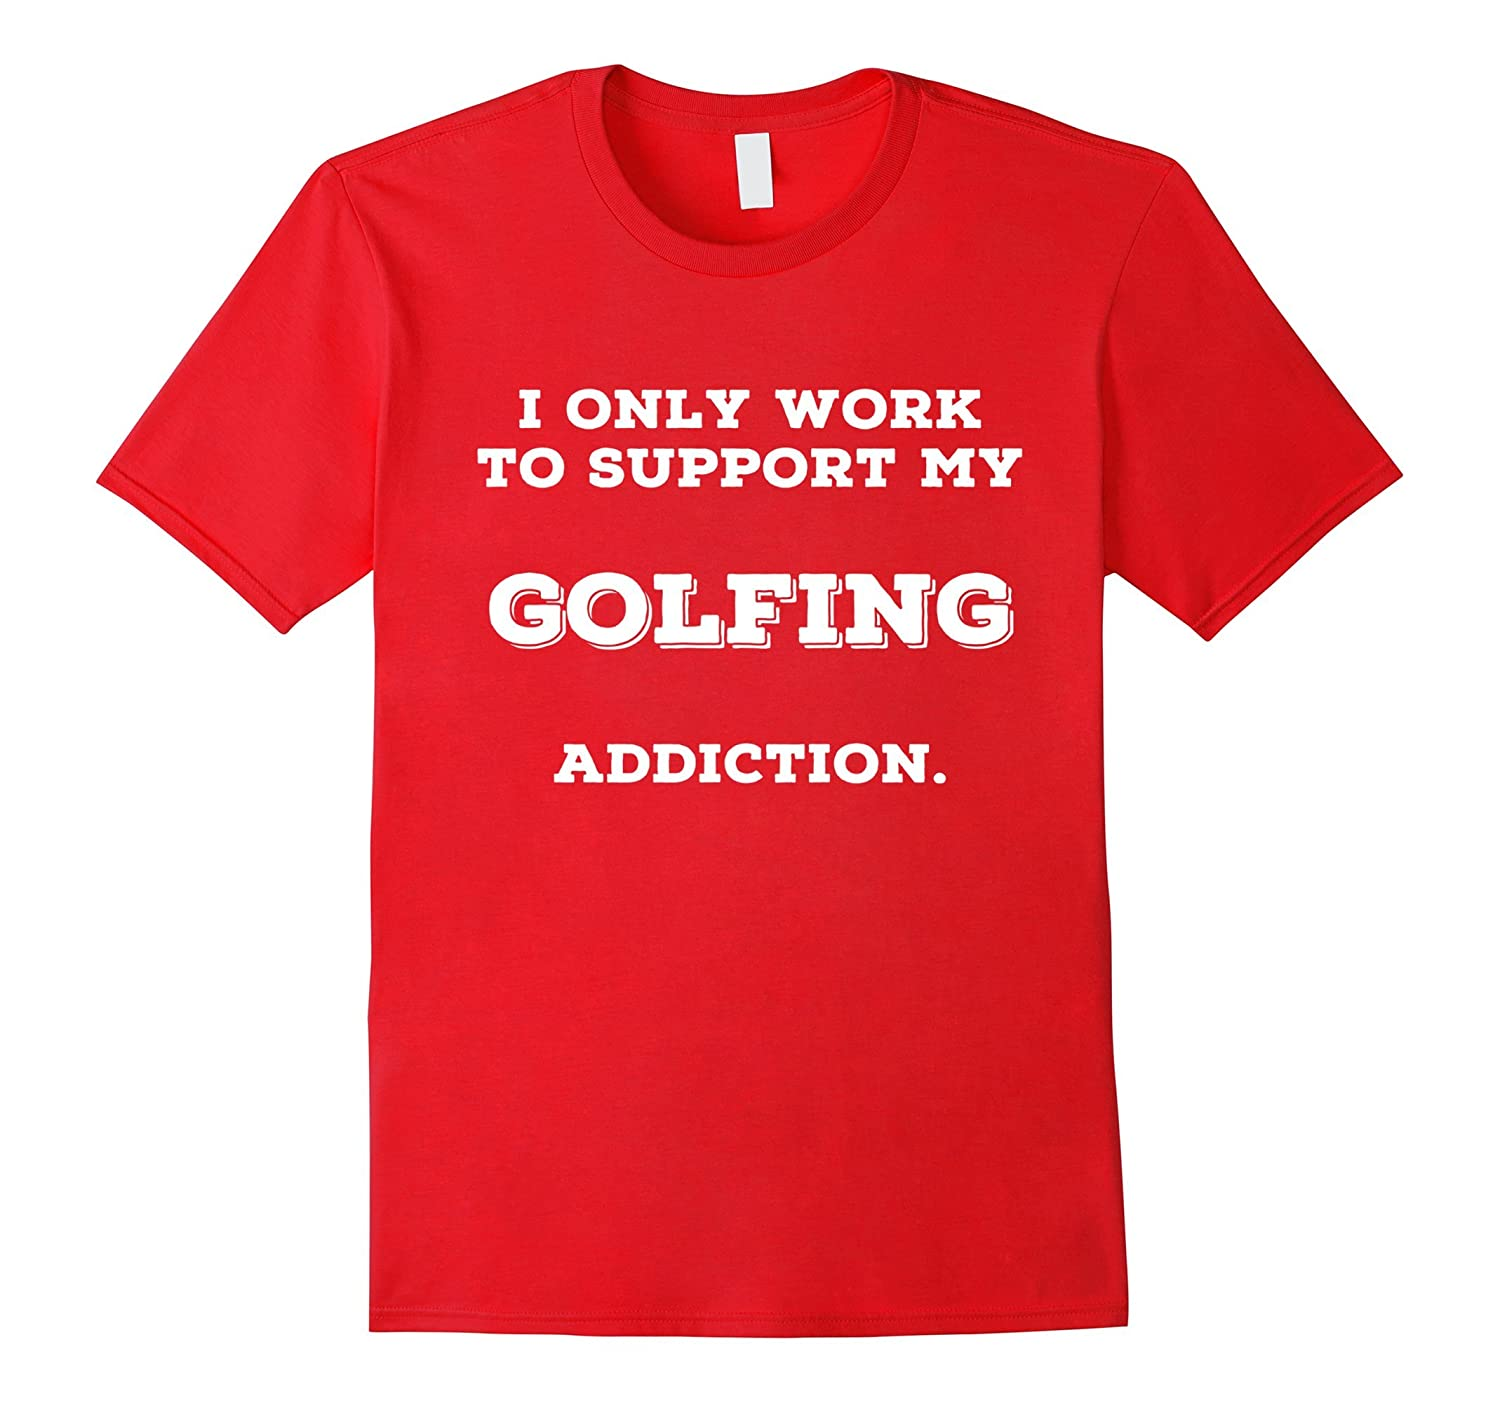 Golfing Mad T Shirts. Funny Golf Gifts Ideas for Golfers.-FL